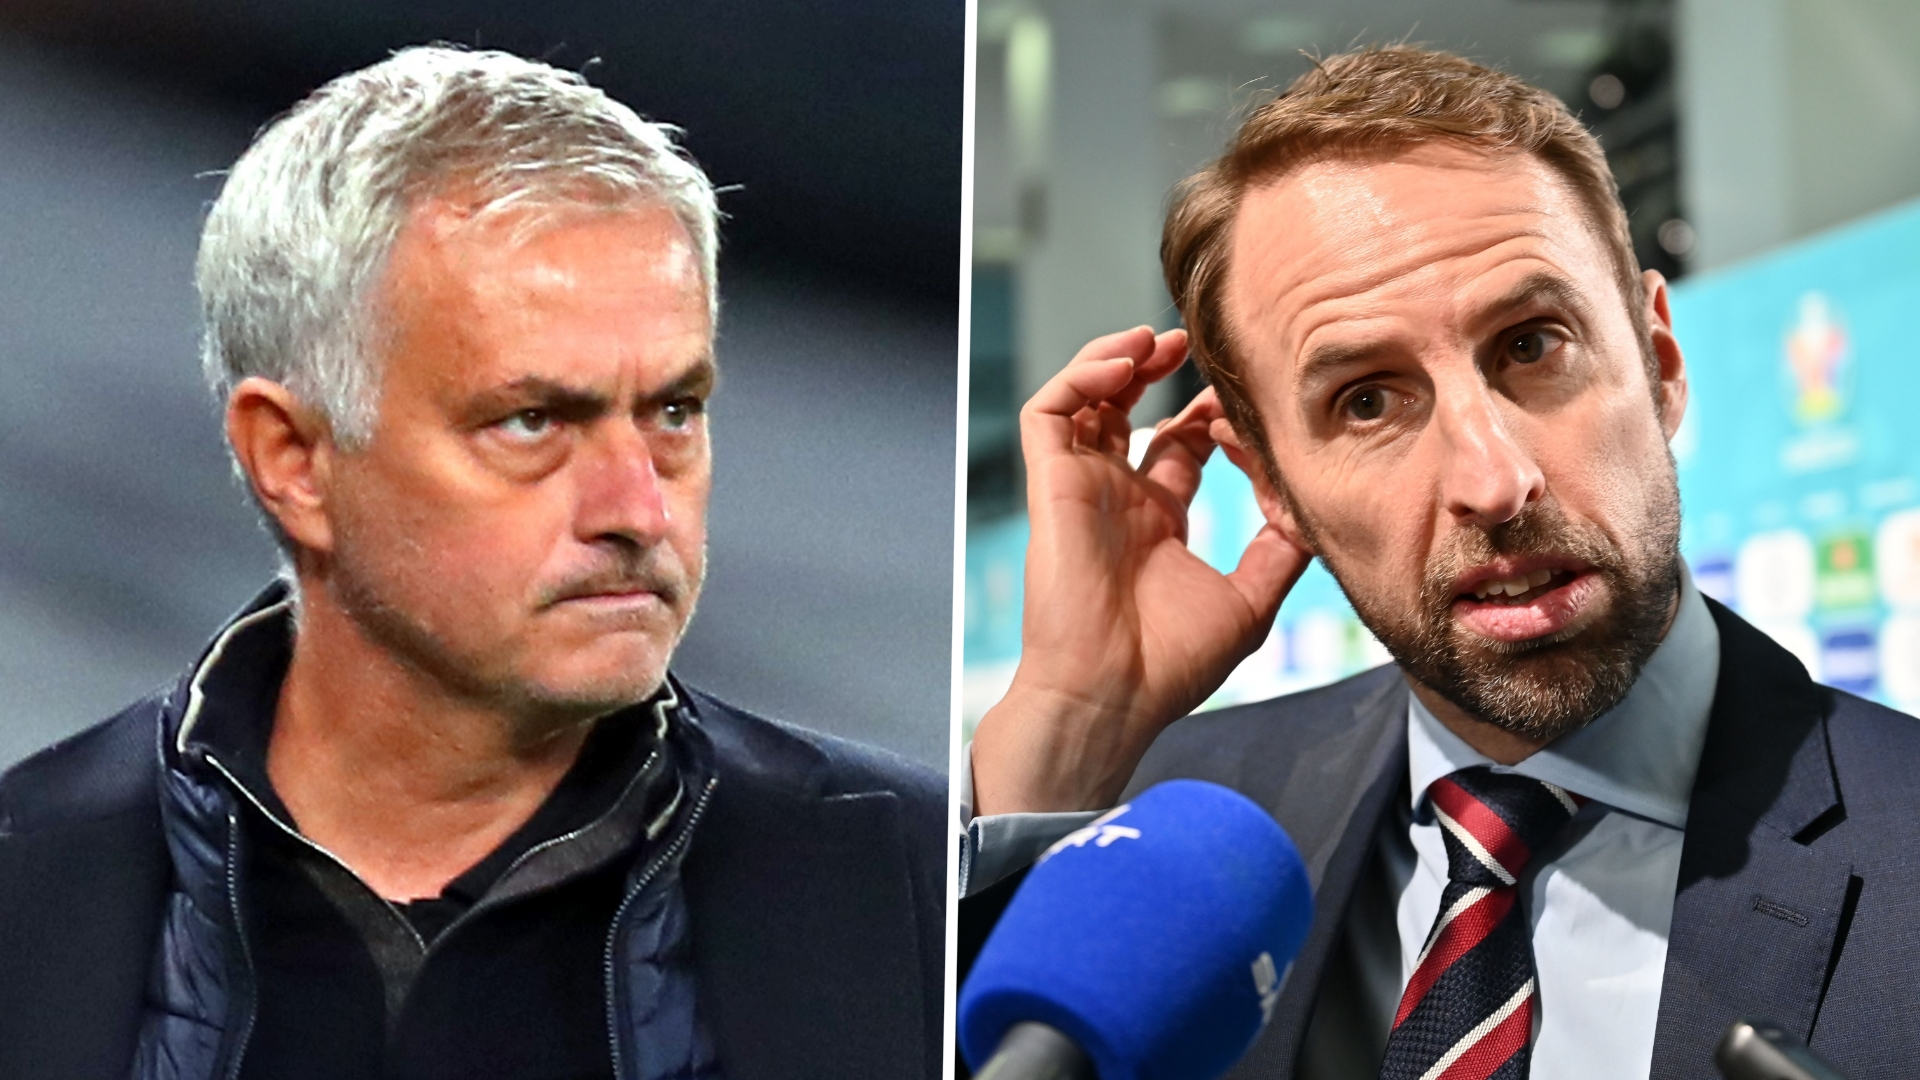 'I don't understand' - Southgate responds to reports of Mourinho rift over Kane fitness